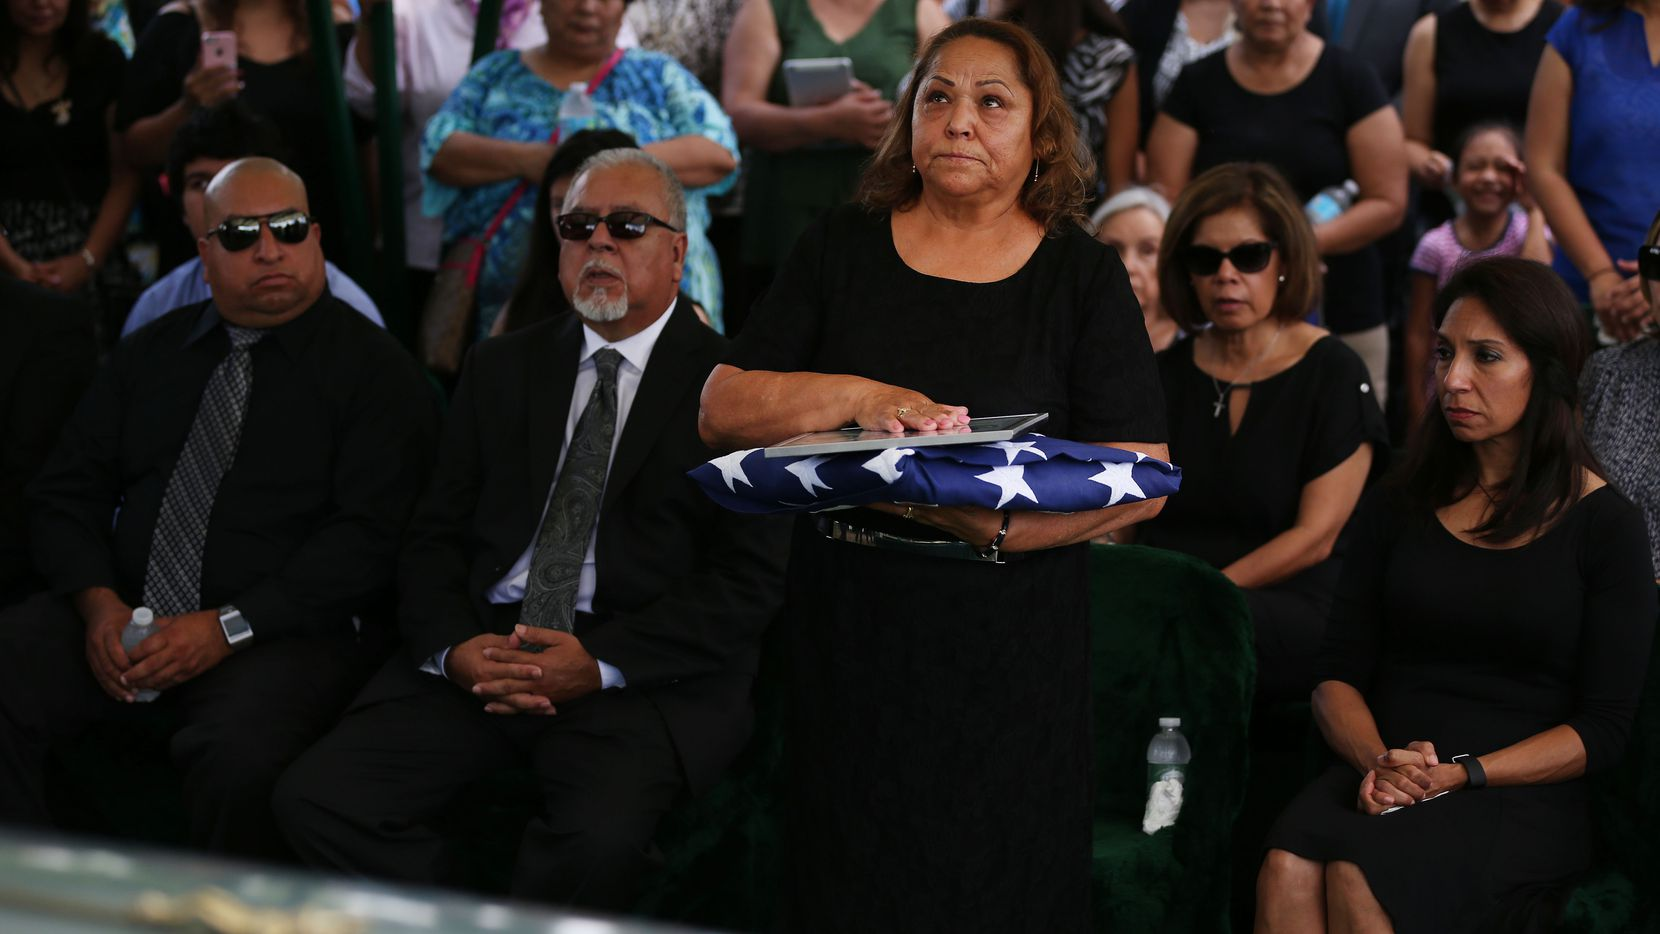 Maria Ramirez, wife of Felix Lozada, stands after military funeral honors during Lozada's burial service at Calvary Hill Cemetery in Dallas on Saturday.